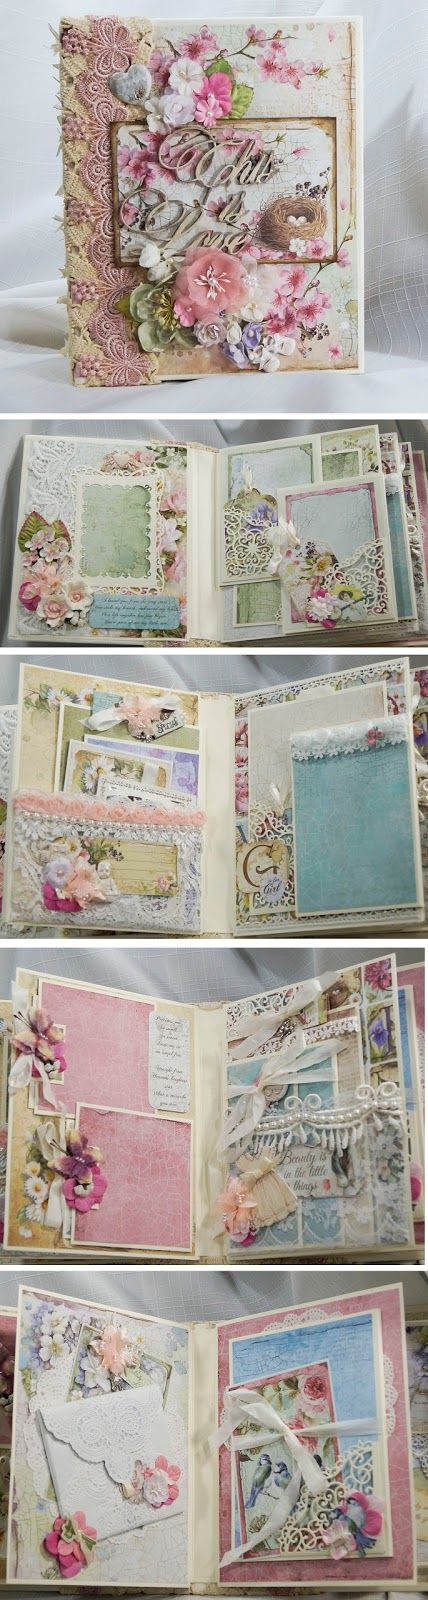 Terry's Scrapbooks